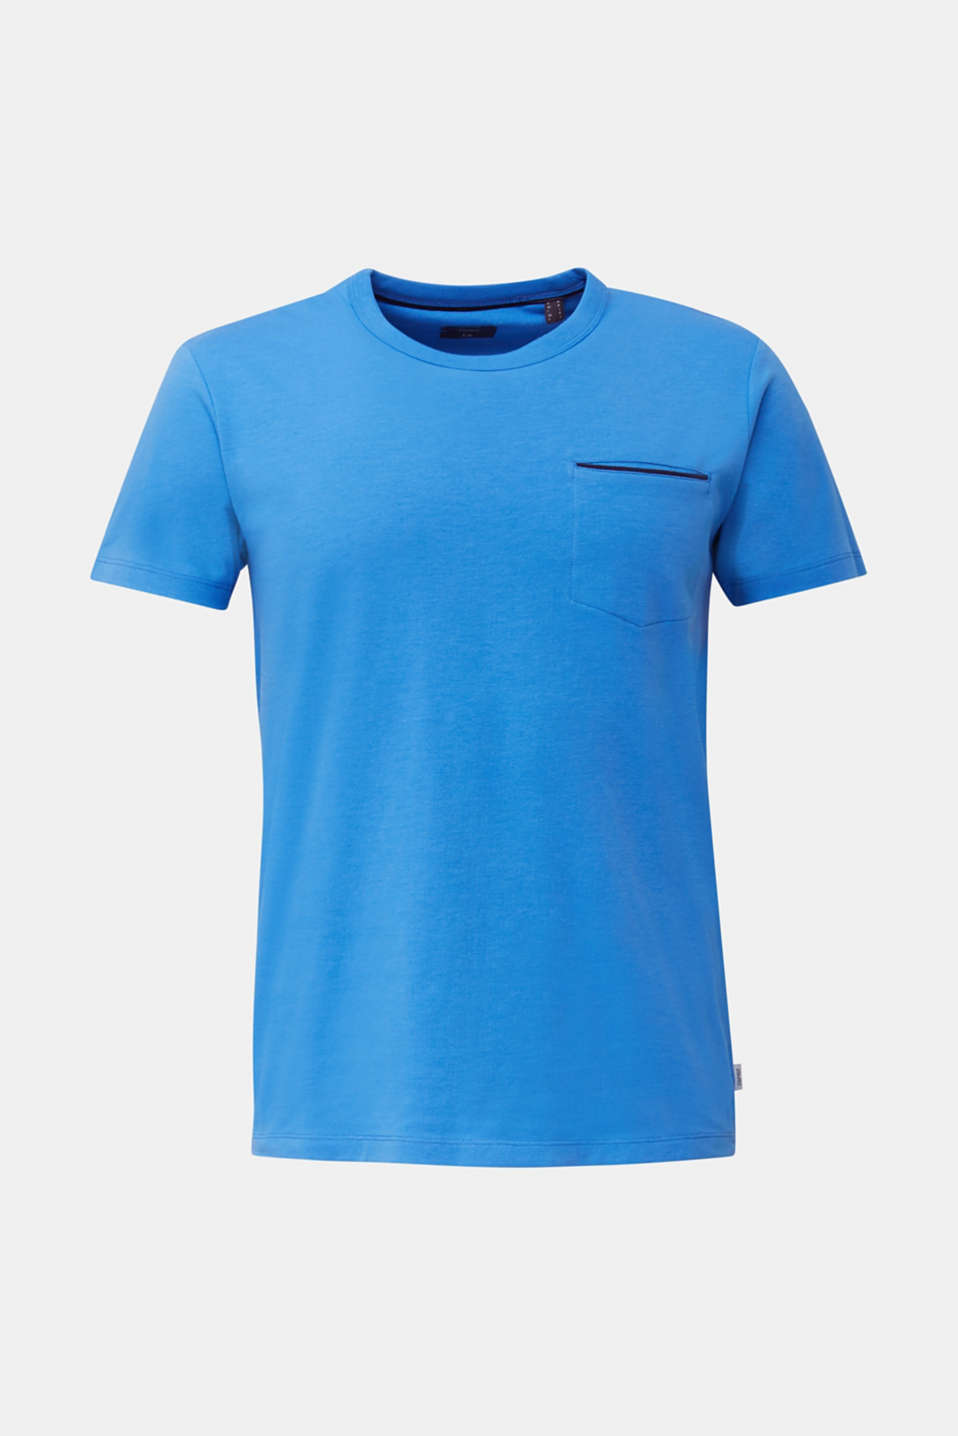 Jersey T-shirt with a pocket and COOLMAX®, BLUE 2, detail image number 7